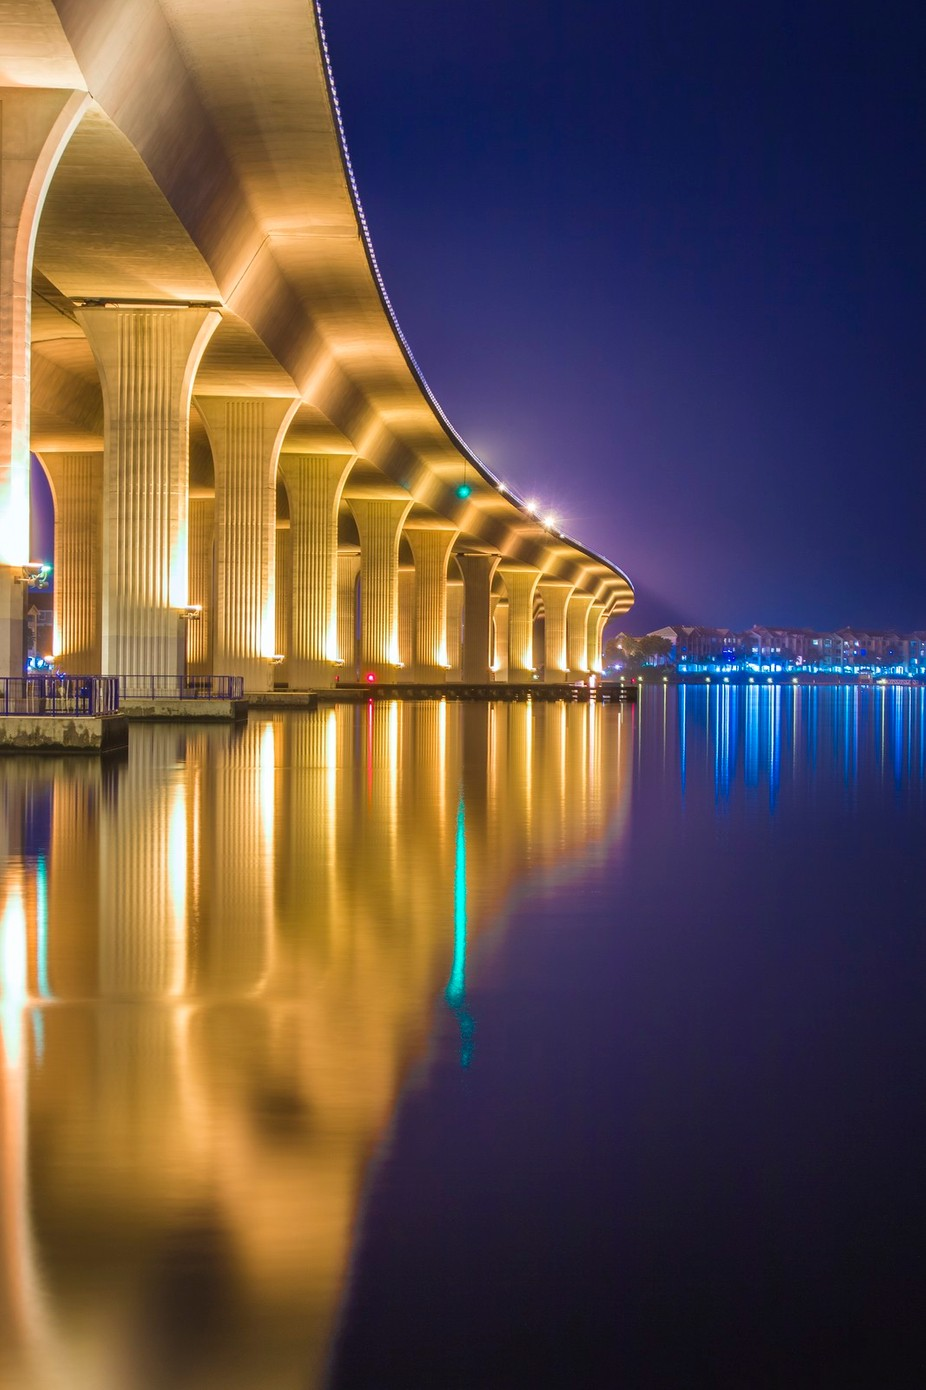 Roosevelt Bridge Reflection Portrait by jpfotos - Playing With Light Photo Contest